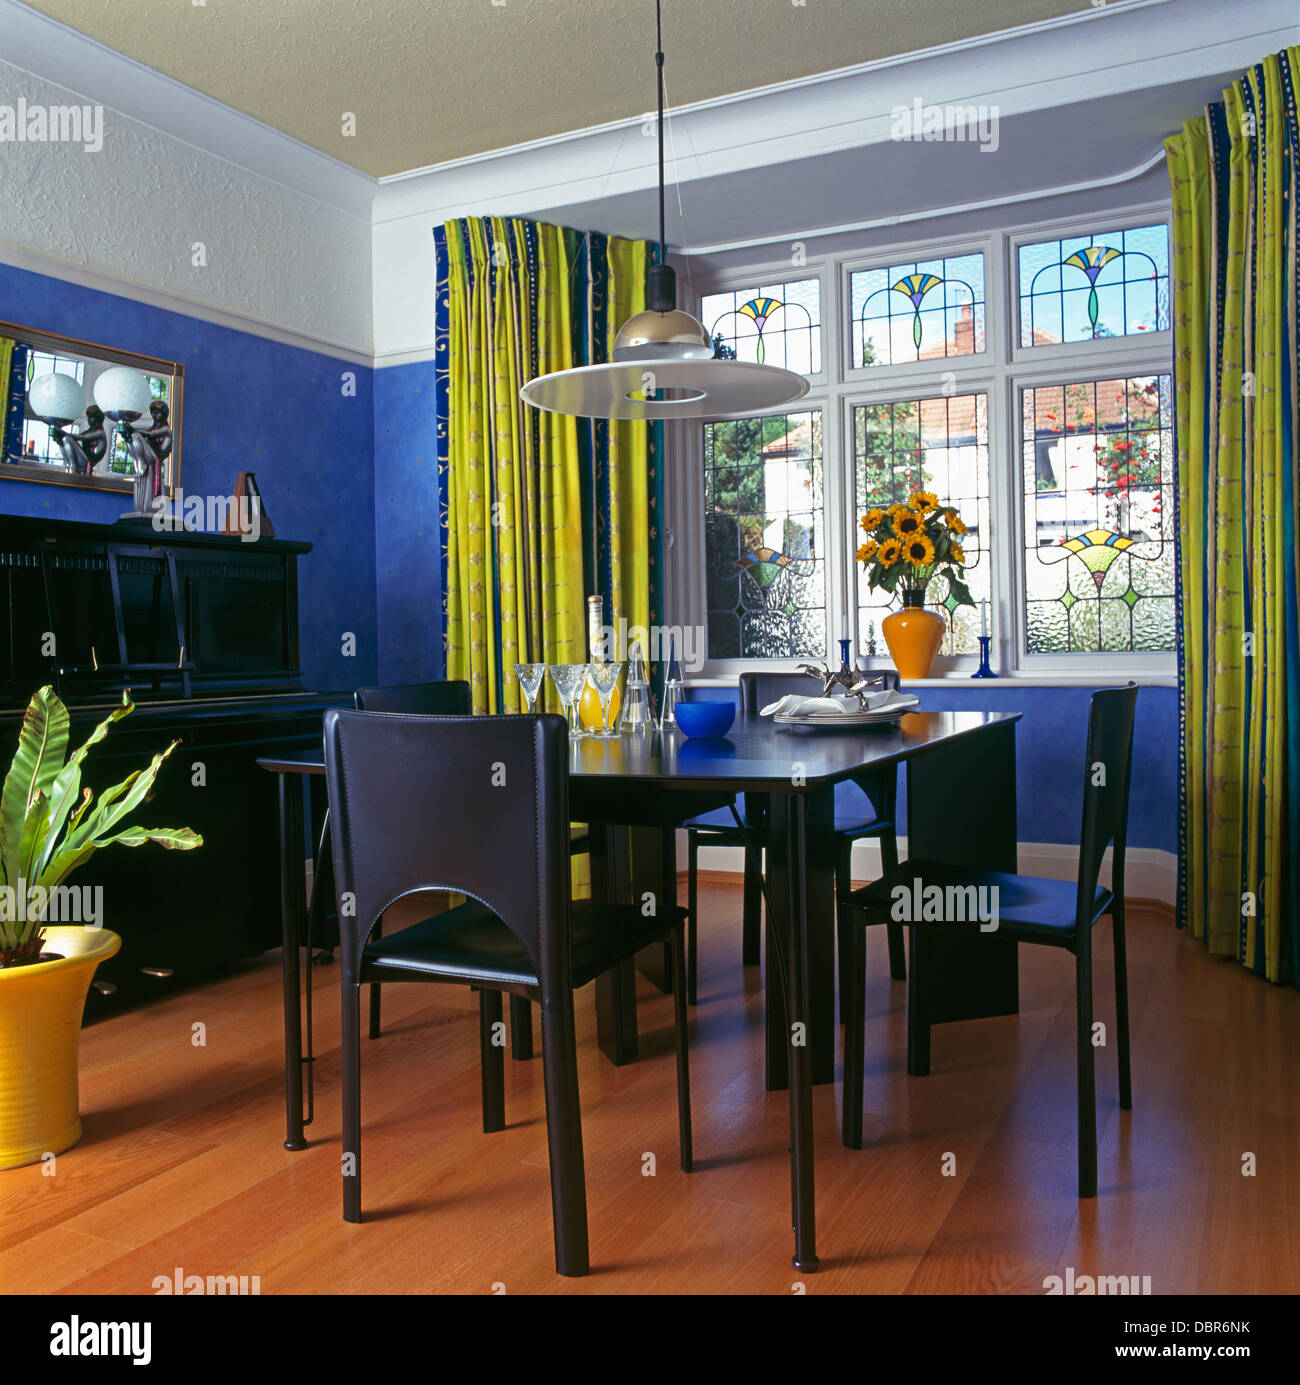 Disc Light Above Black Chairs And Table In Modern Blue Dining Room With  Lime Green Curtains On Stained Glass Windows